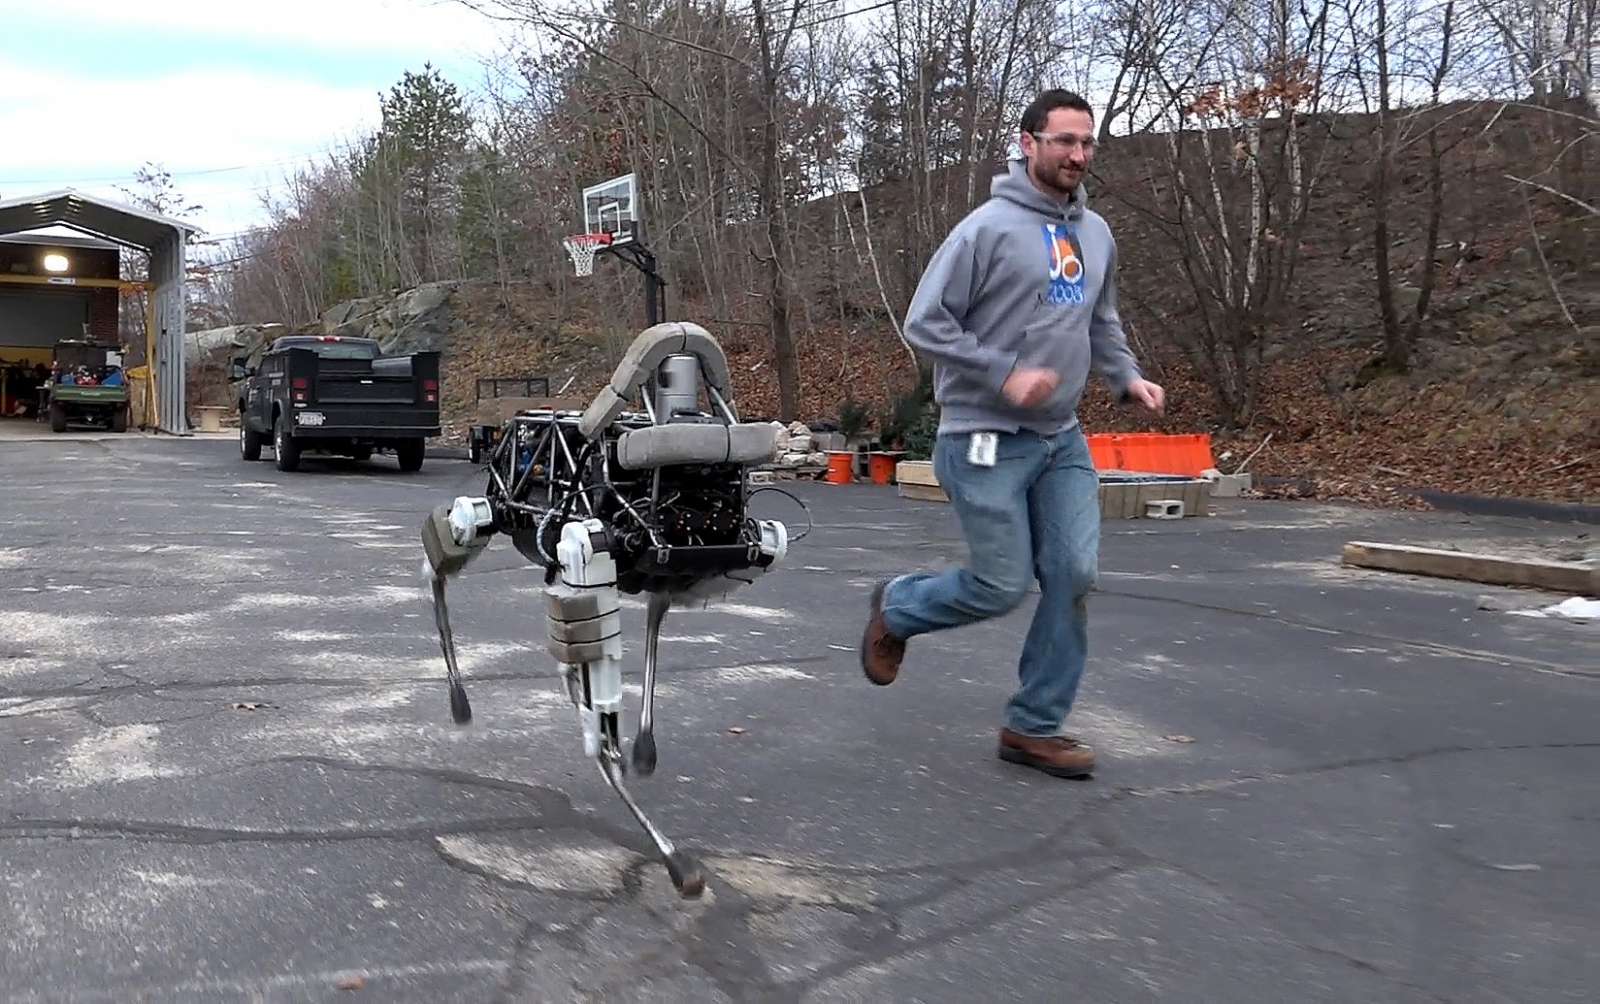 Boston Dynamics' robot dog Spot